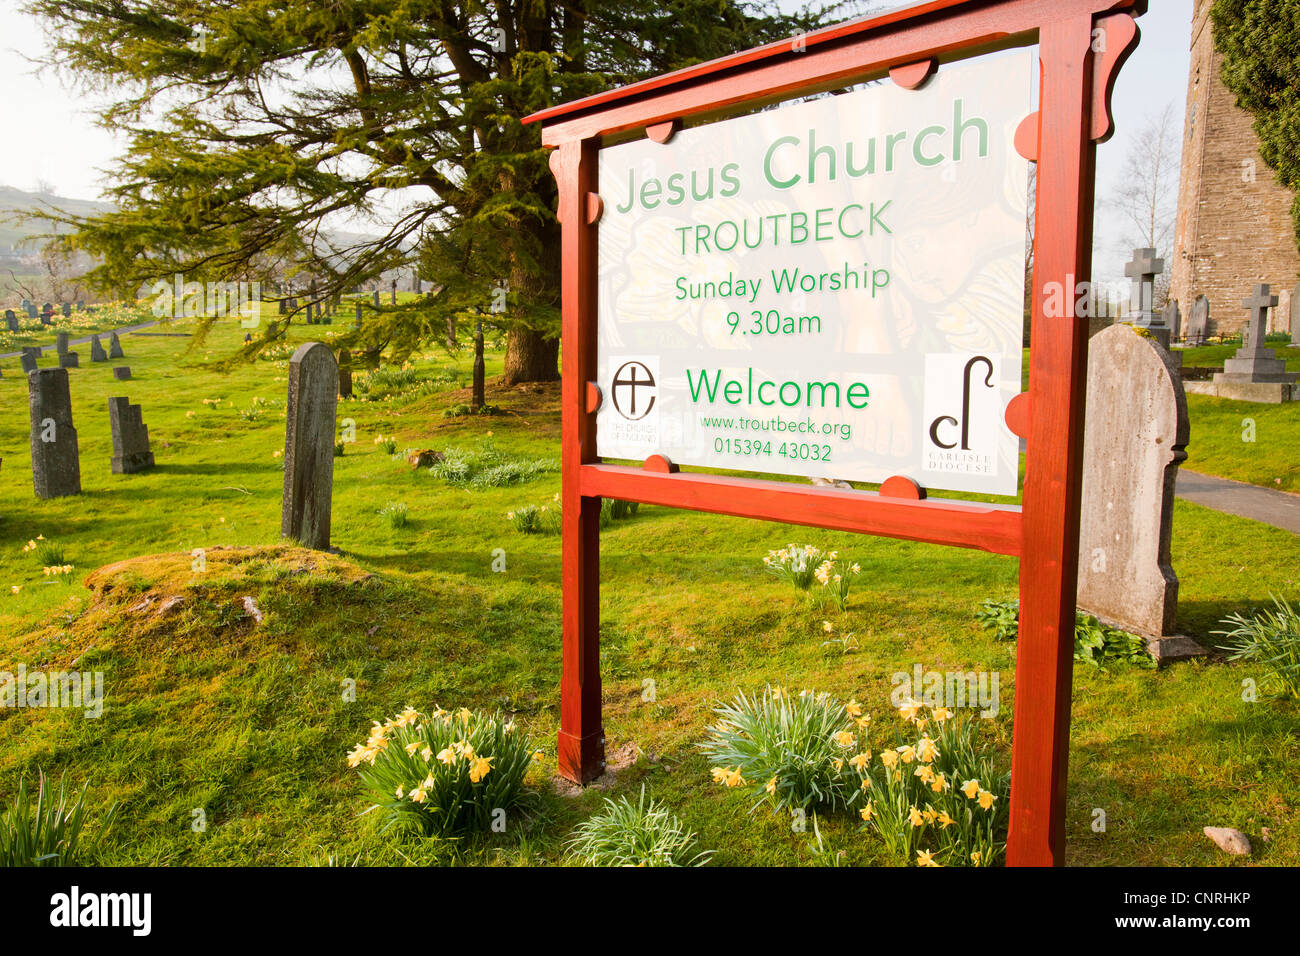 Jesus Church in Troutbeck, Lake District, UK, with wild Daffodils flowering in the church yard. - Stock Image